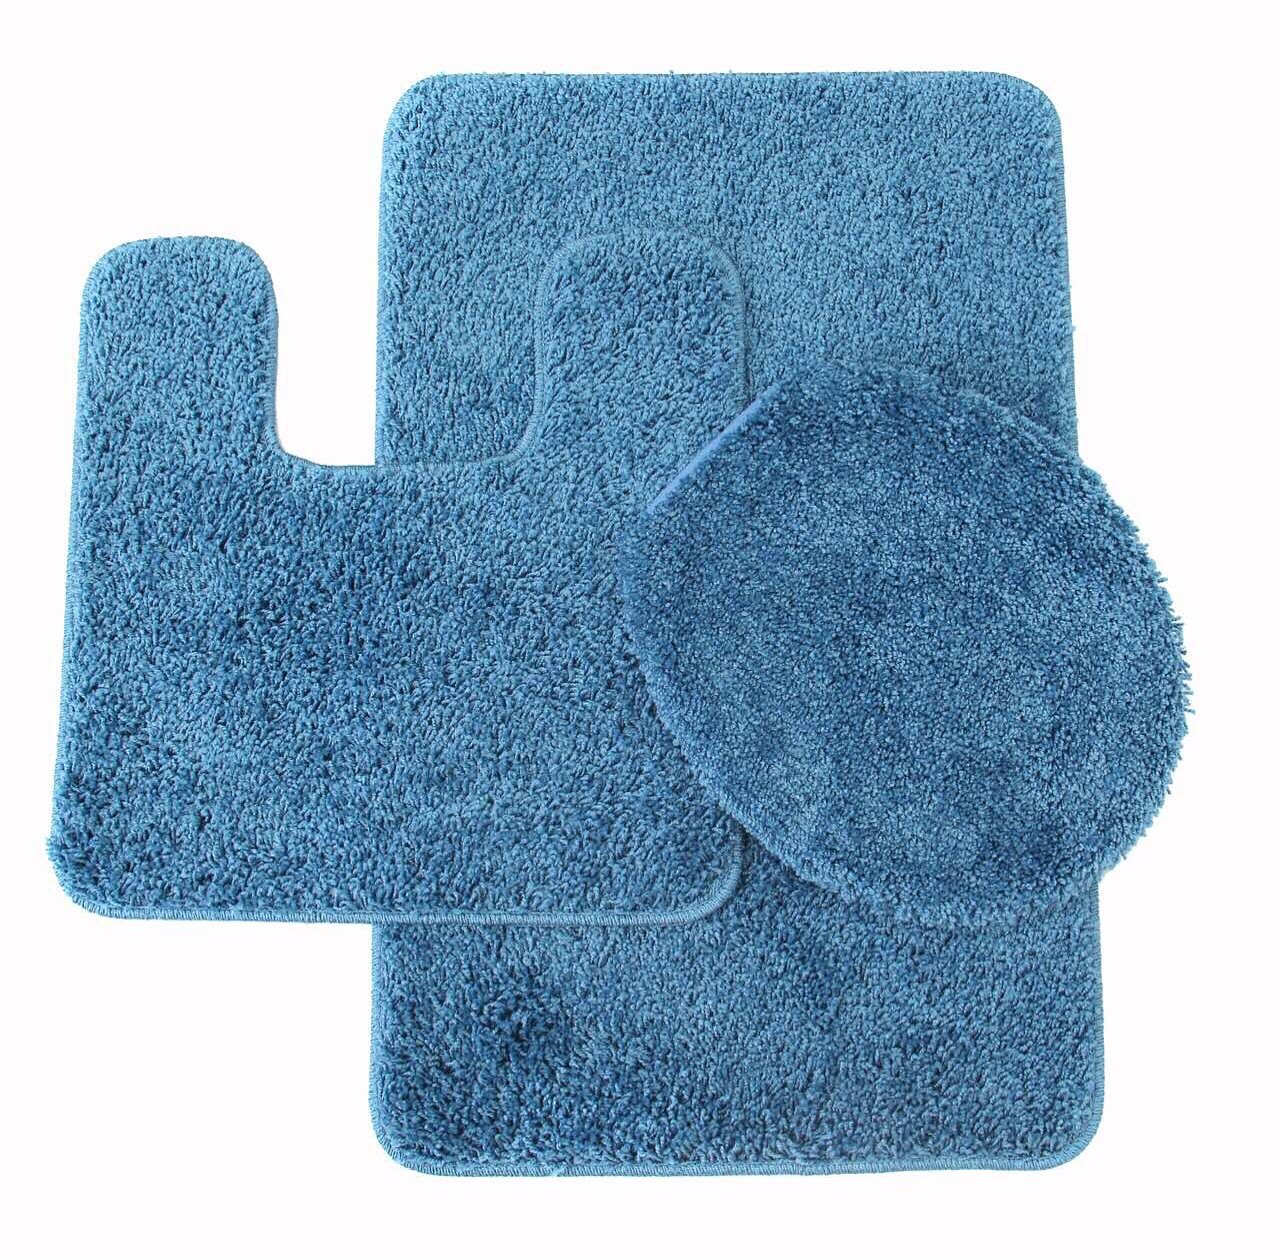 3 Piece Monte Carlo Spa Collection Rug Set Large Mat 20''x''31 Contour 20''x''20 Lid Cover 18''x''19 Inch. (Dusty Blue)